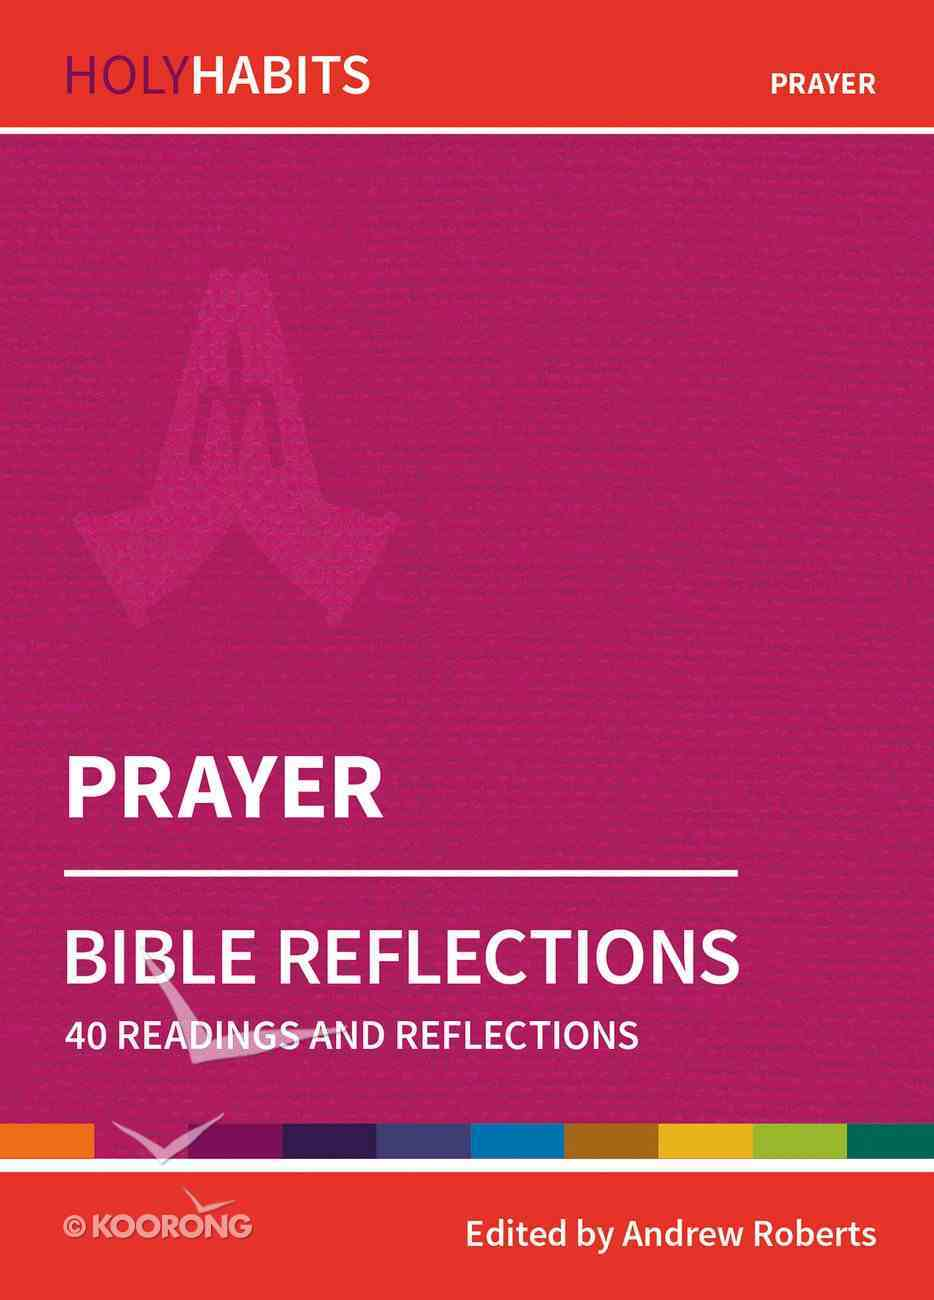 Prayer: 40 Readings and Reflections (Holy Habits Series) Paperback